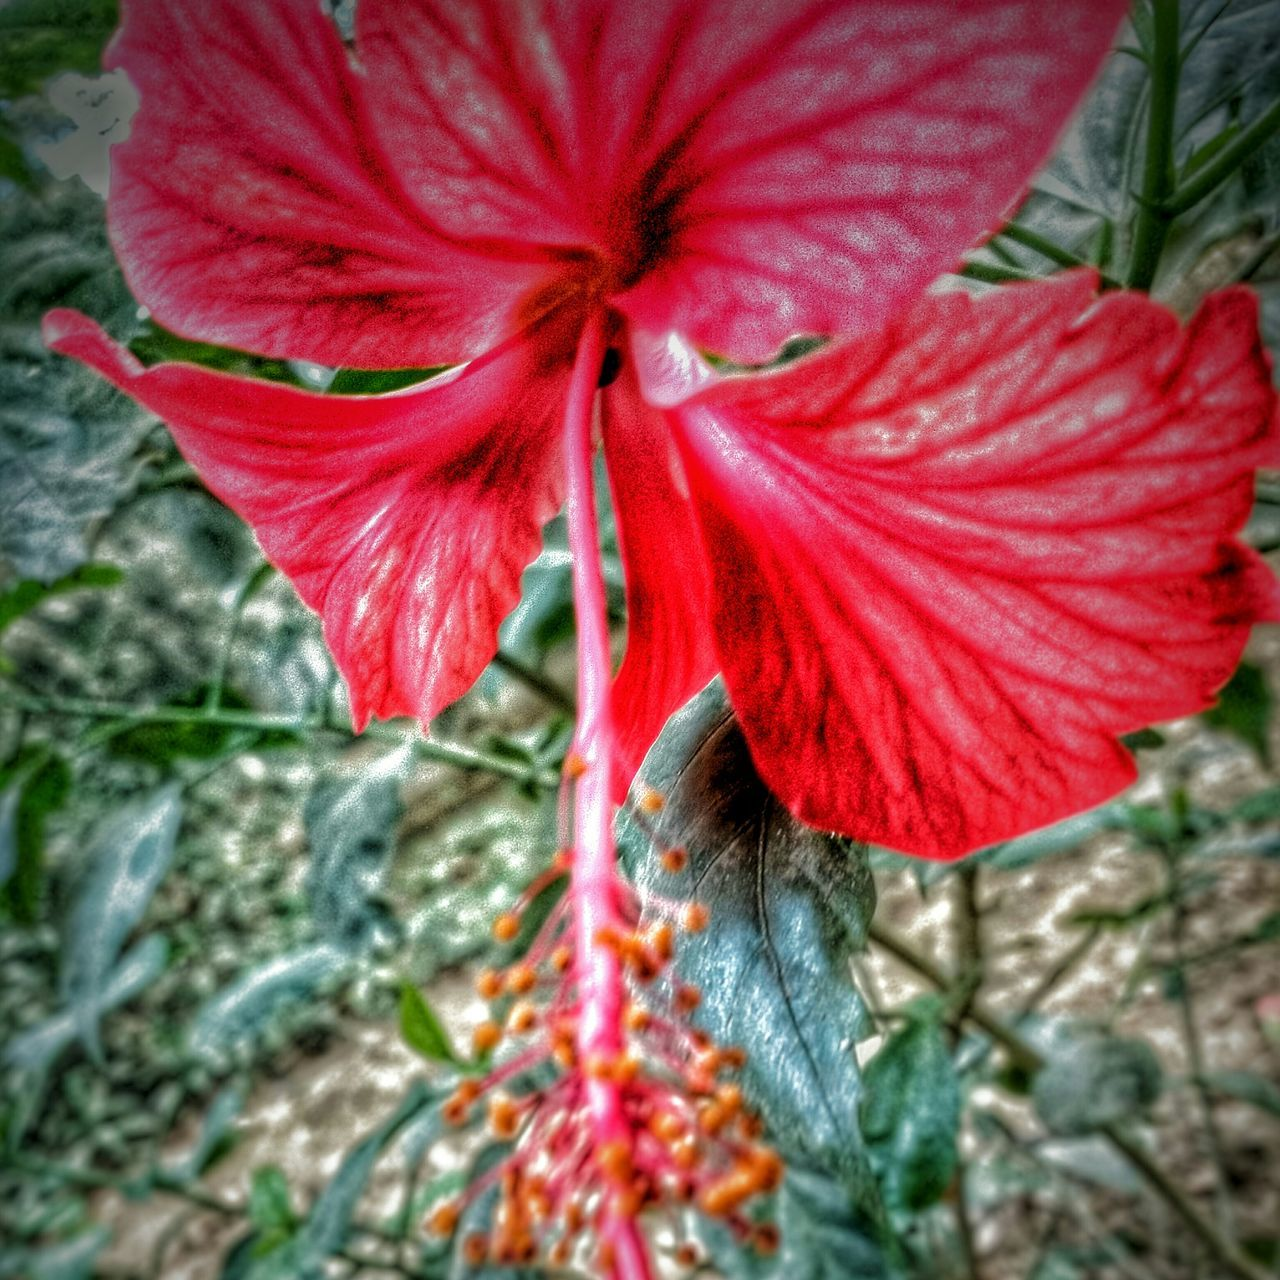 red, growth, plant, flower, fragility, petal, day, nature, flower head, outdoors, close-up, freshness, beauty in nature, no people, hibiscus, blooming, day lily